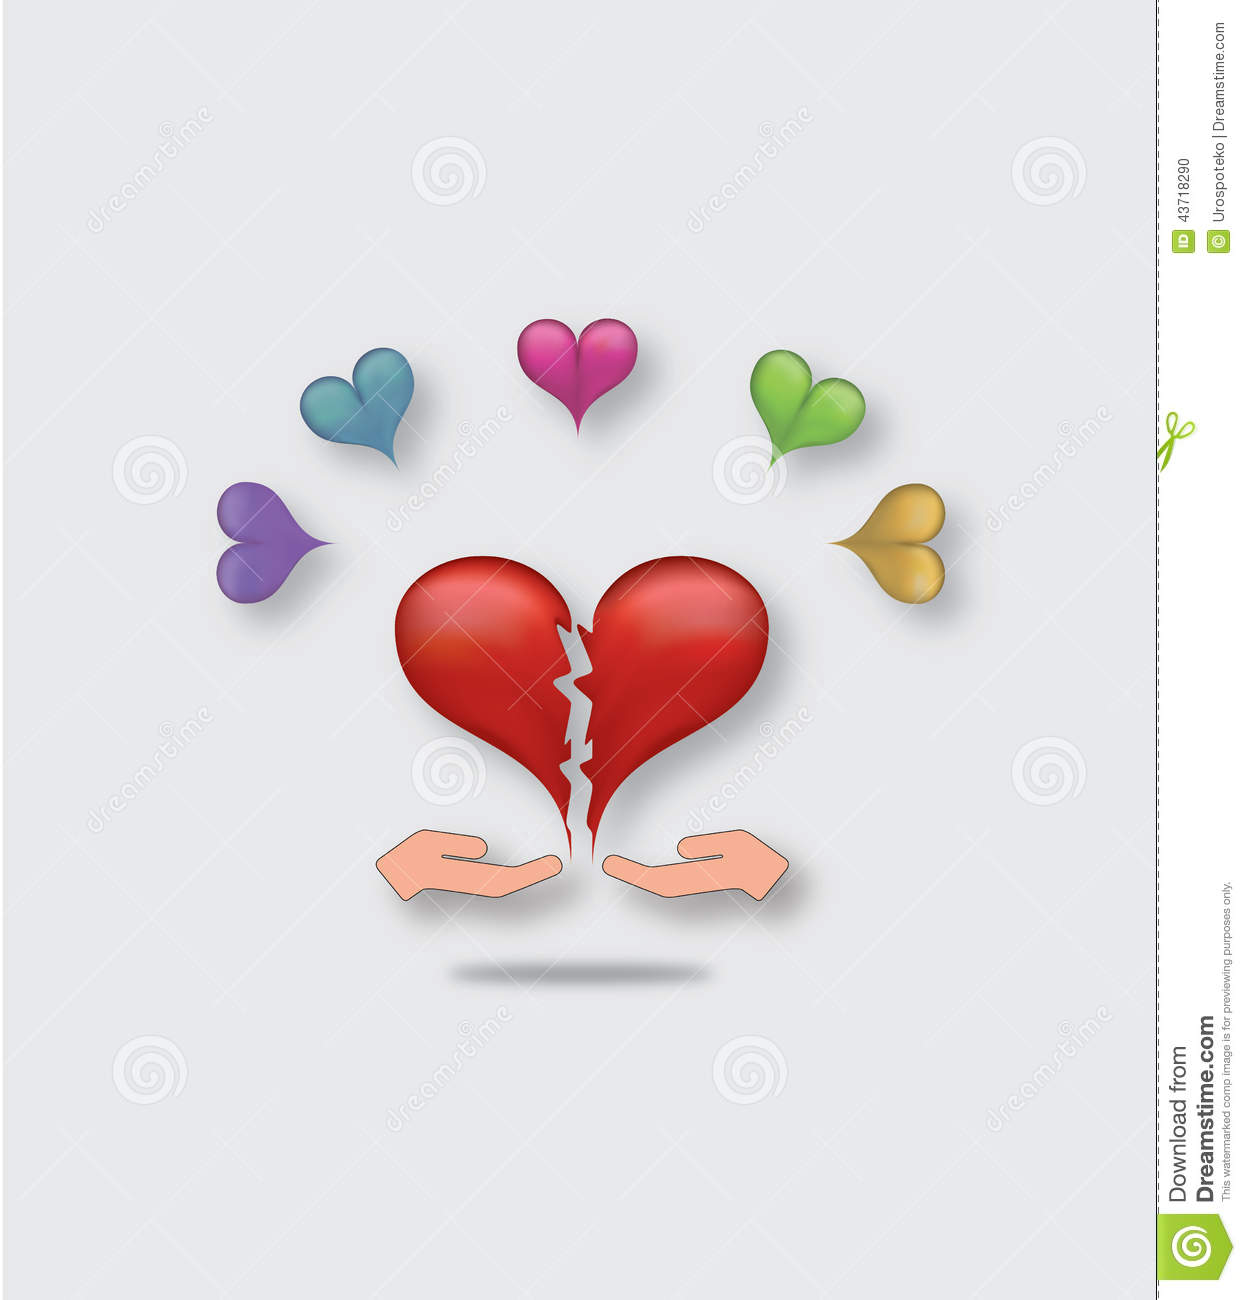 Two hands giving each other pieces of broken heart as a symbols of two hands giving each other pieces of broken heart as a symbols of reconciliation buycottarizona Choice Image